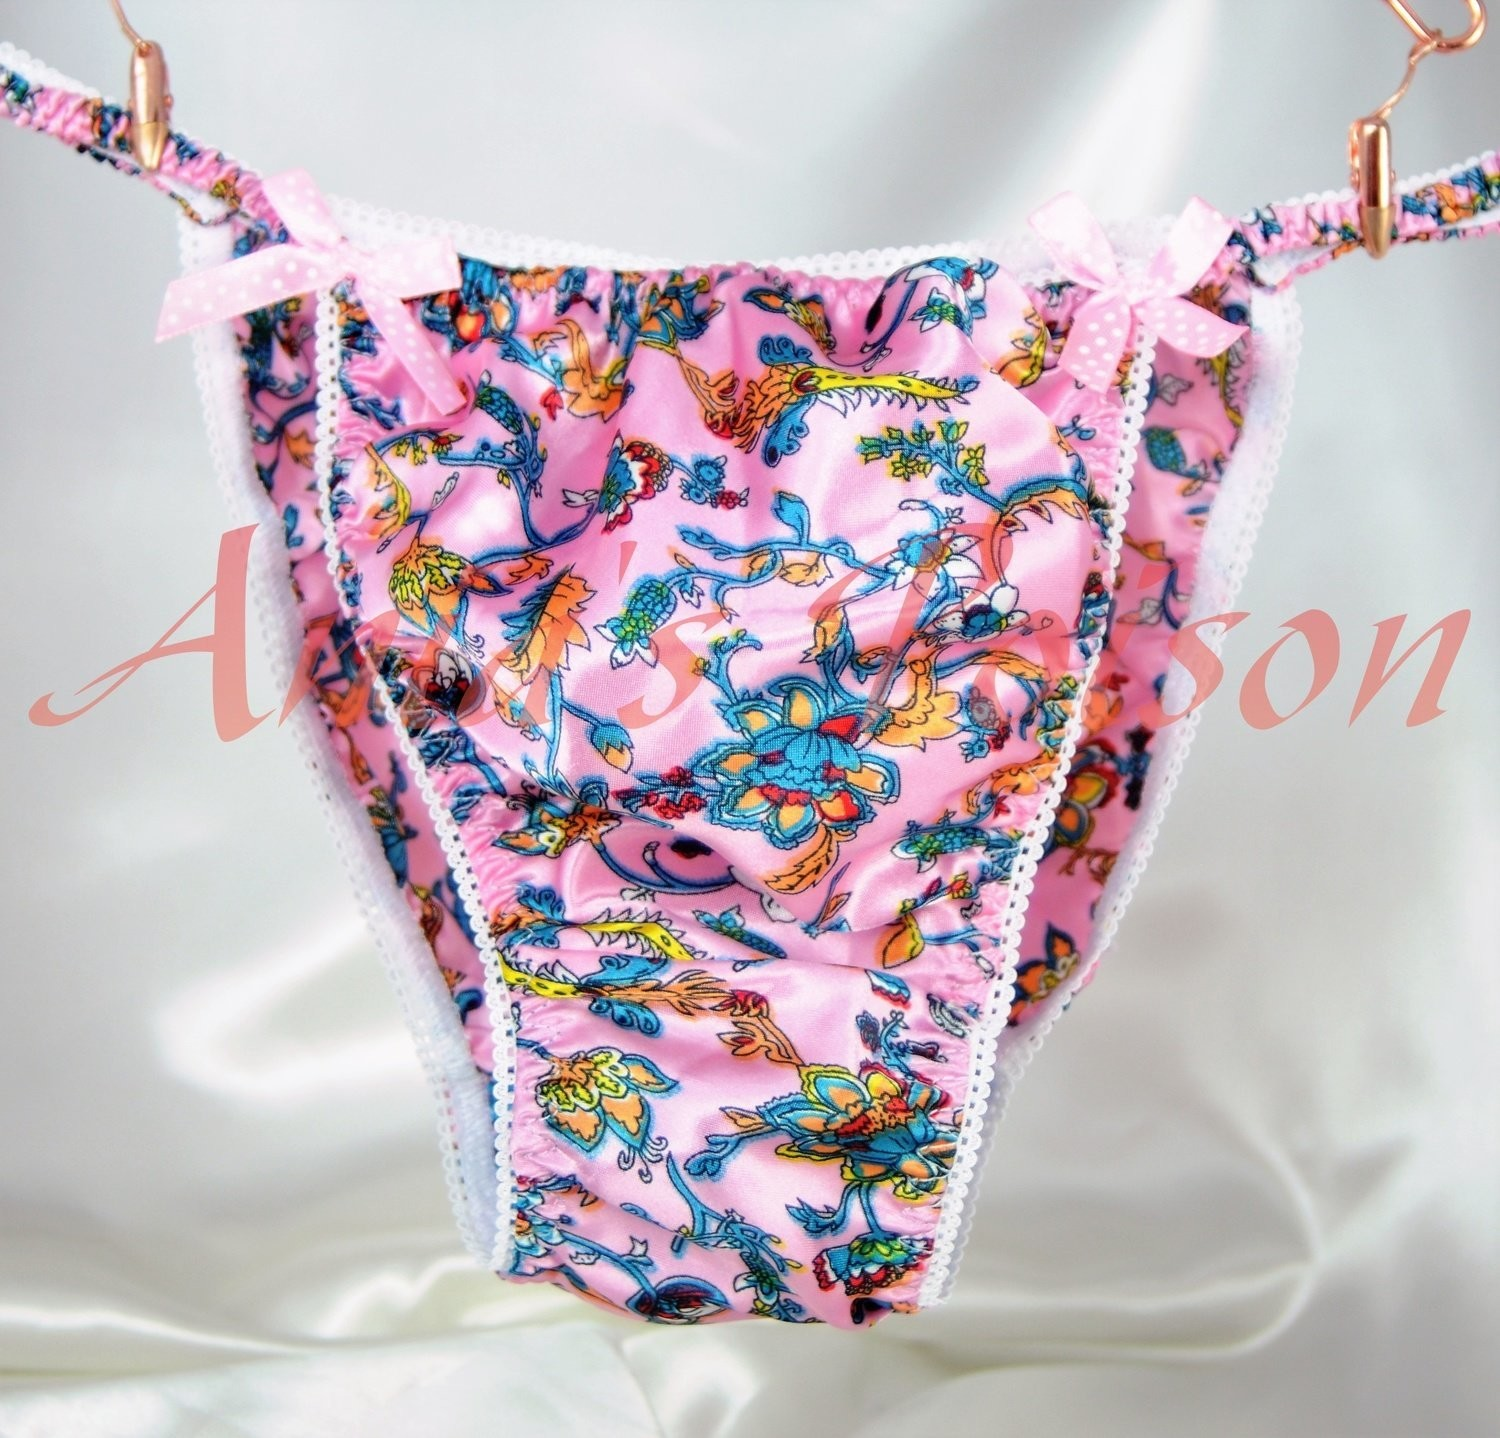 Ania's Poison MANties S - XXL Floral Ethnic Tribal Rare PINK 100% polyester string bikini sissy mens underwear panties